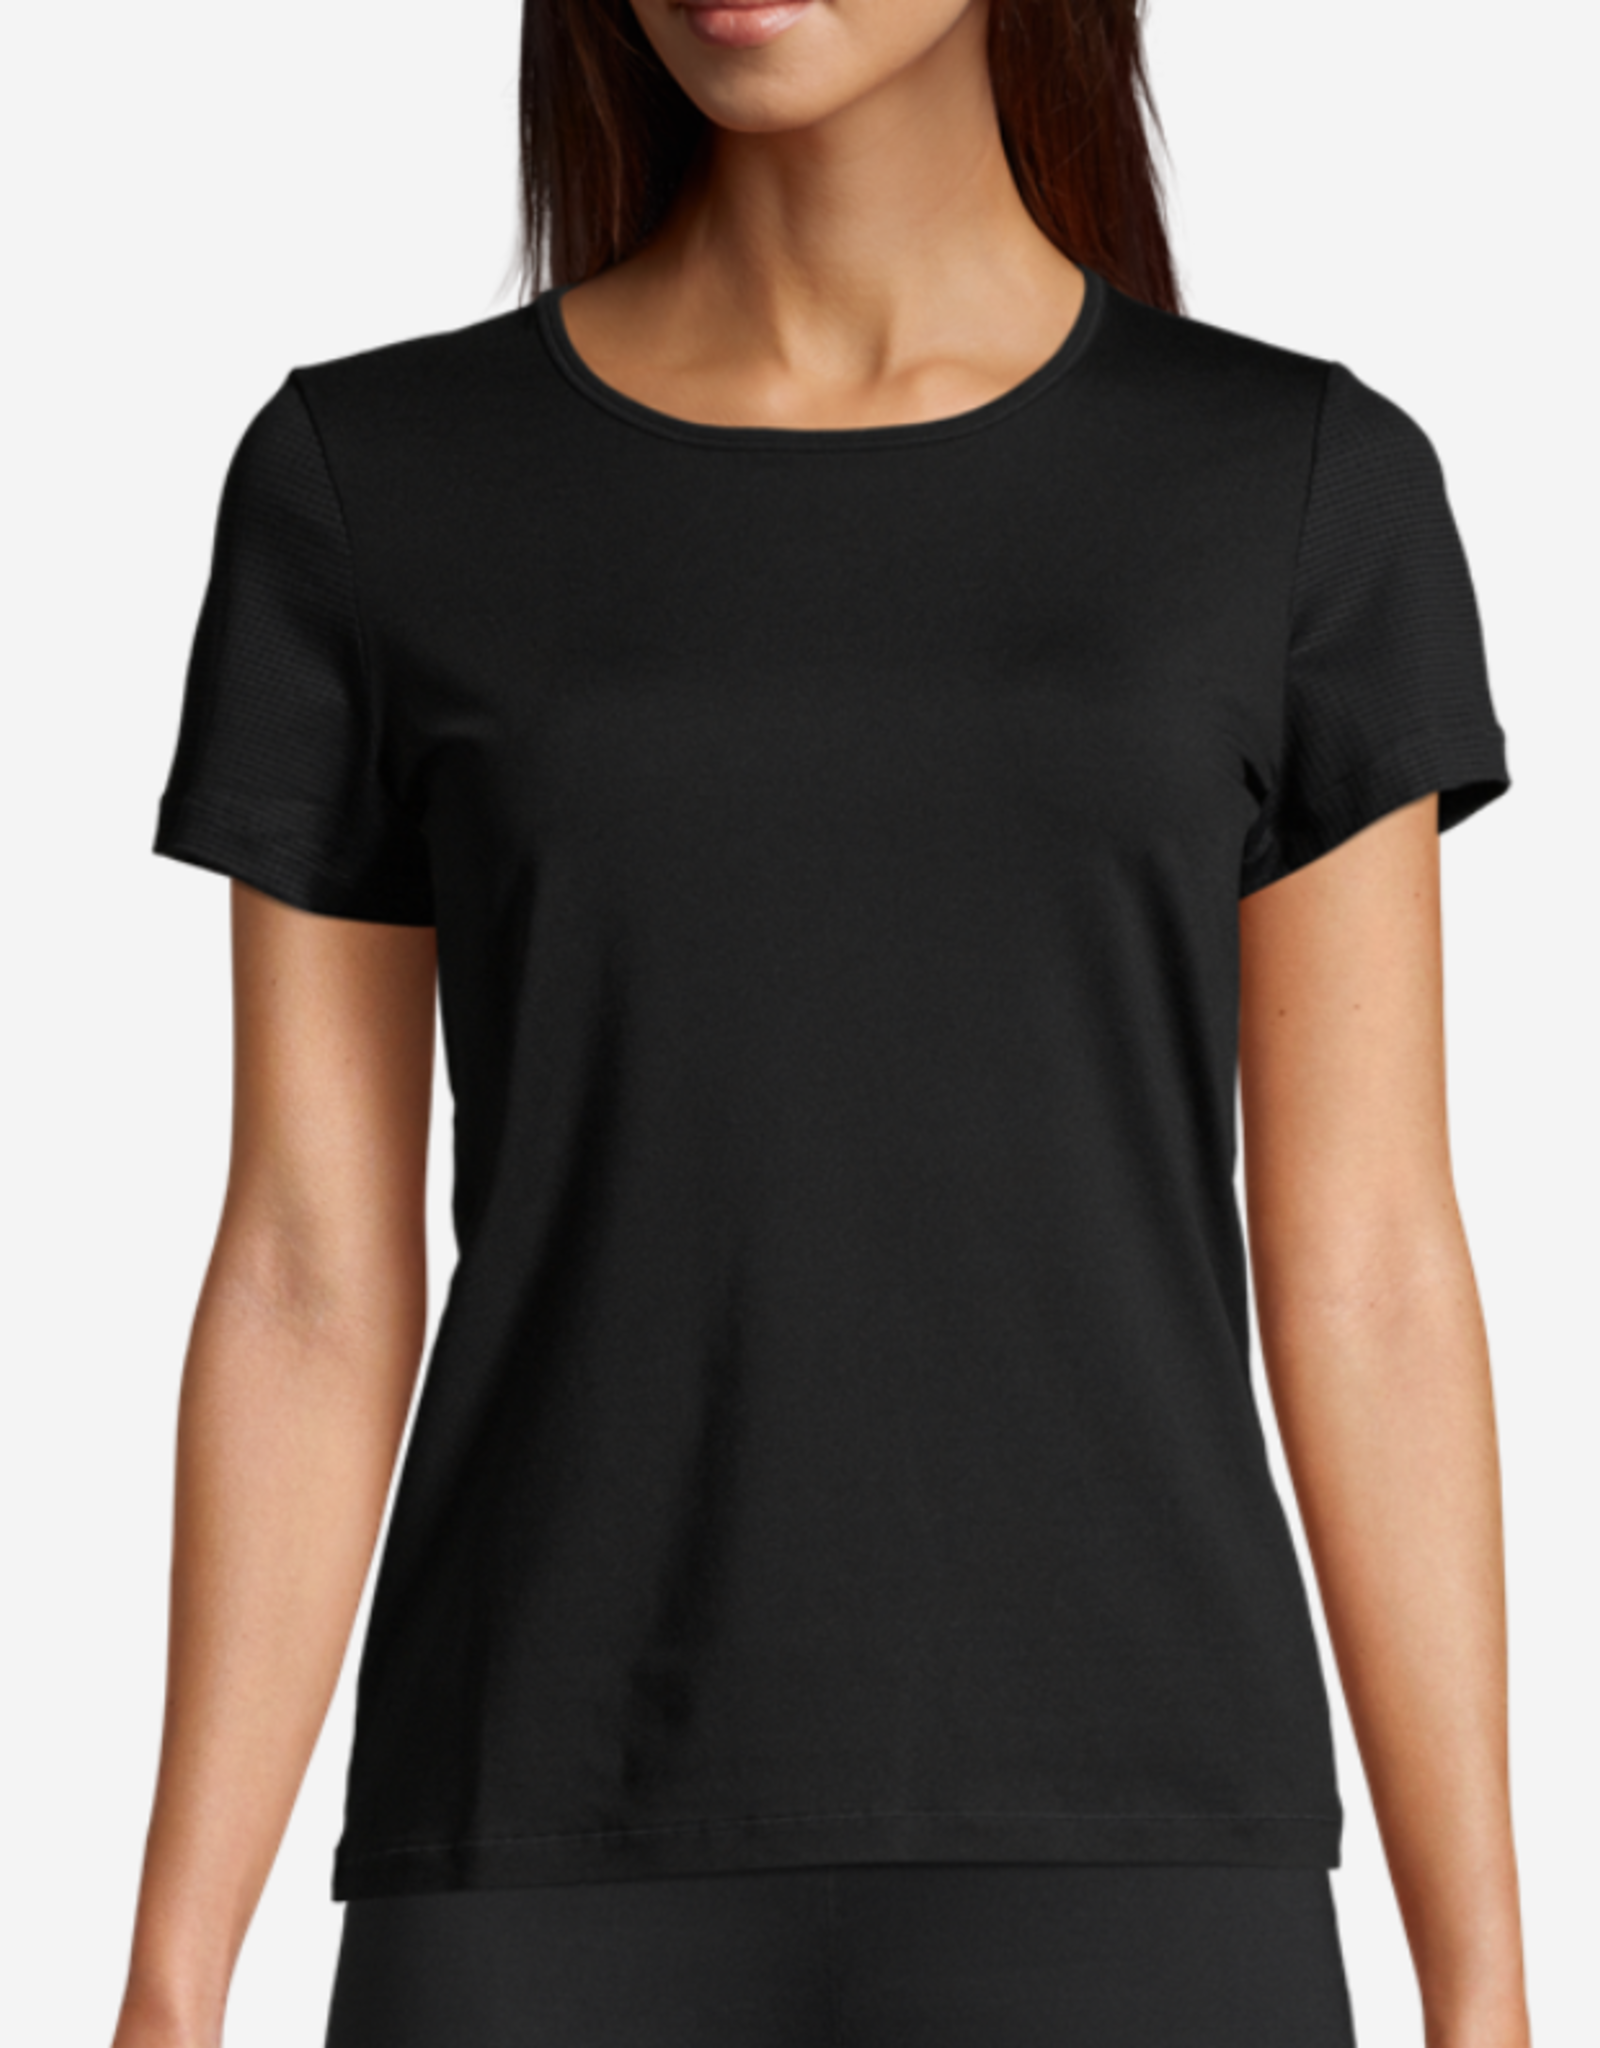 Casall Iconic Tee dames (ref 20451)